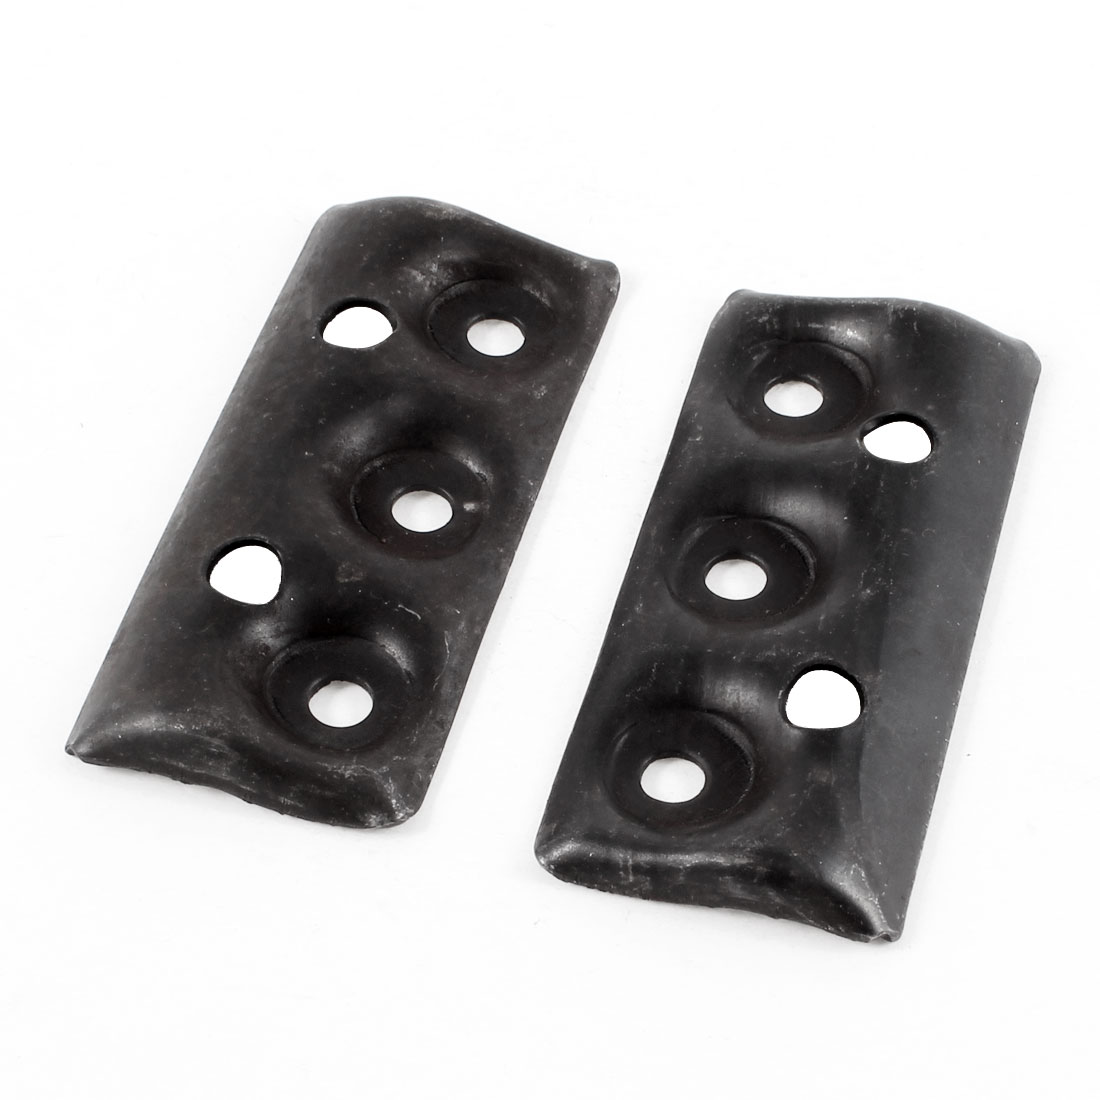 2 Pcs Replacement Cutter Holder for Hitachi F20 Electric Planer